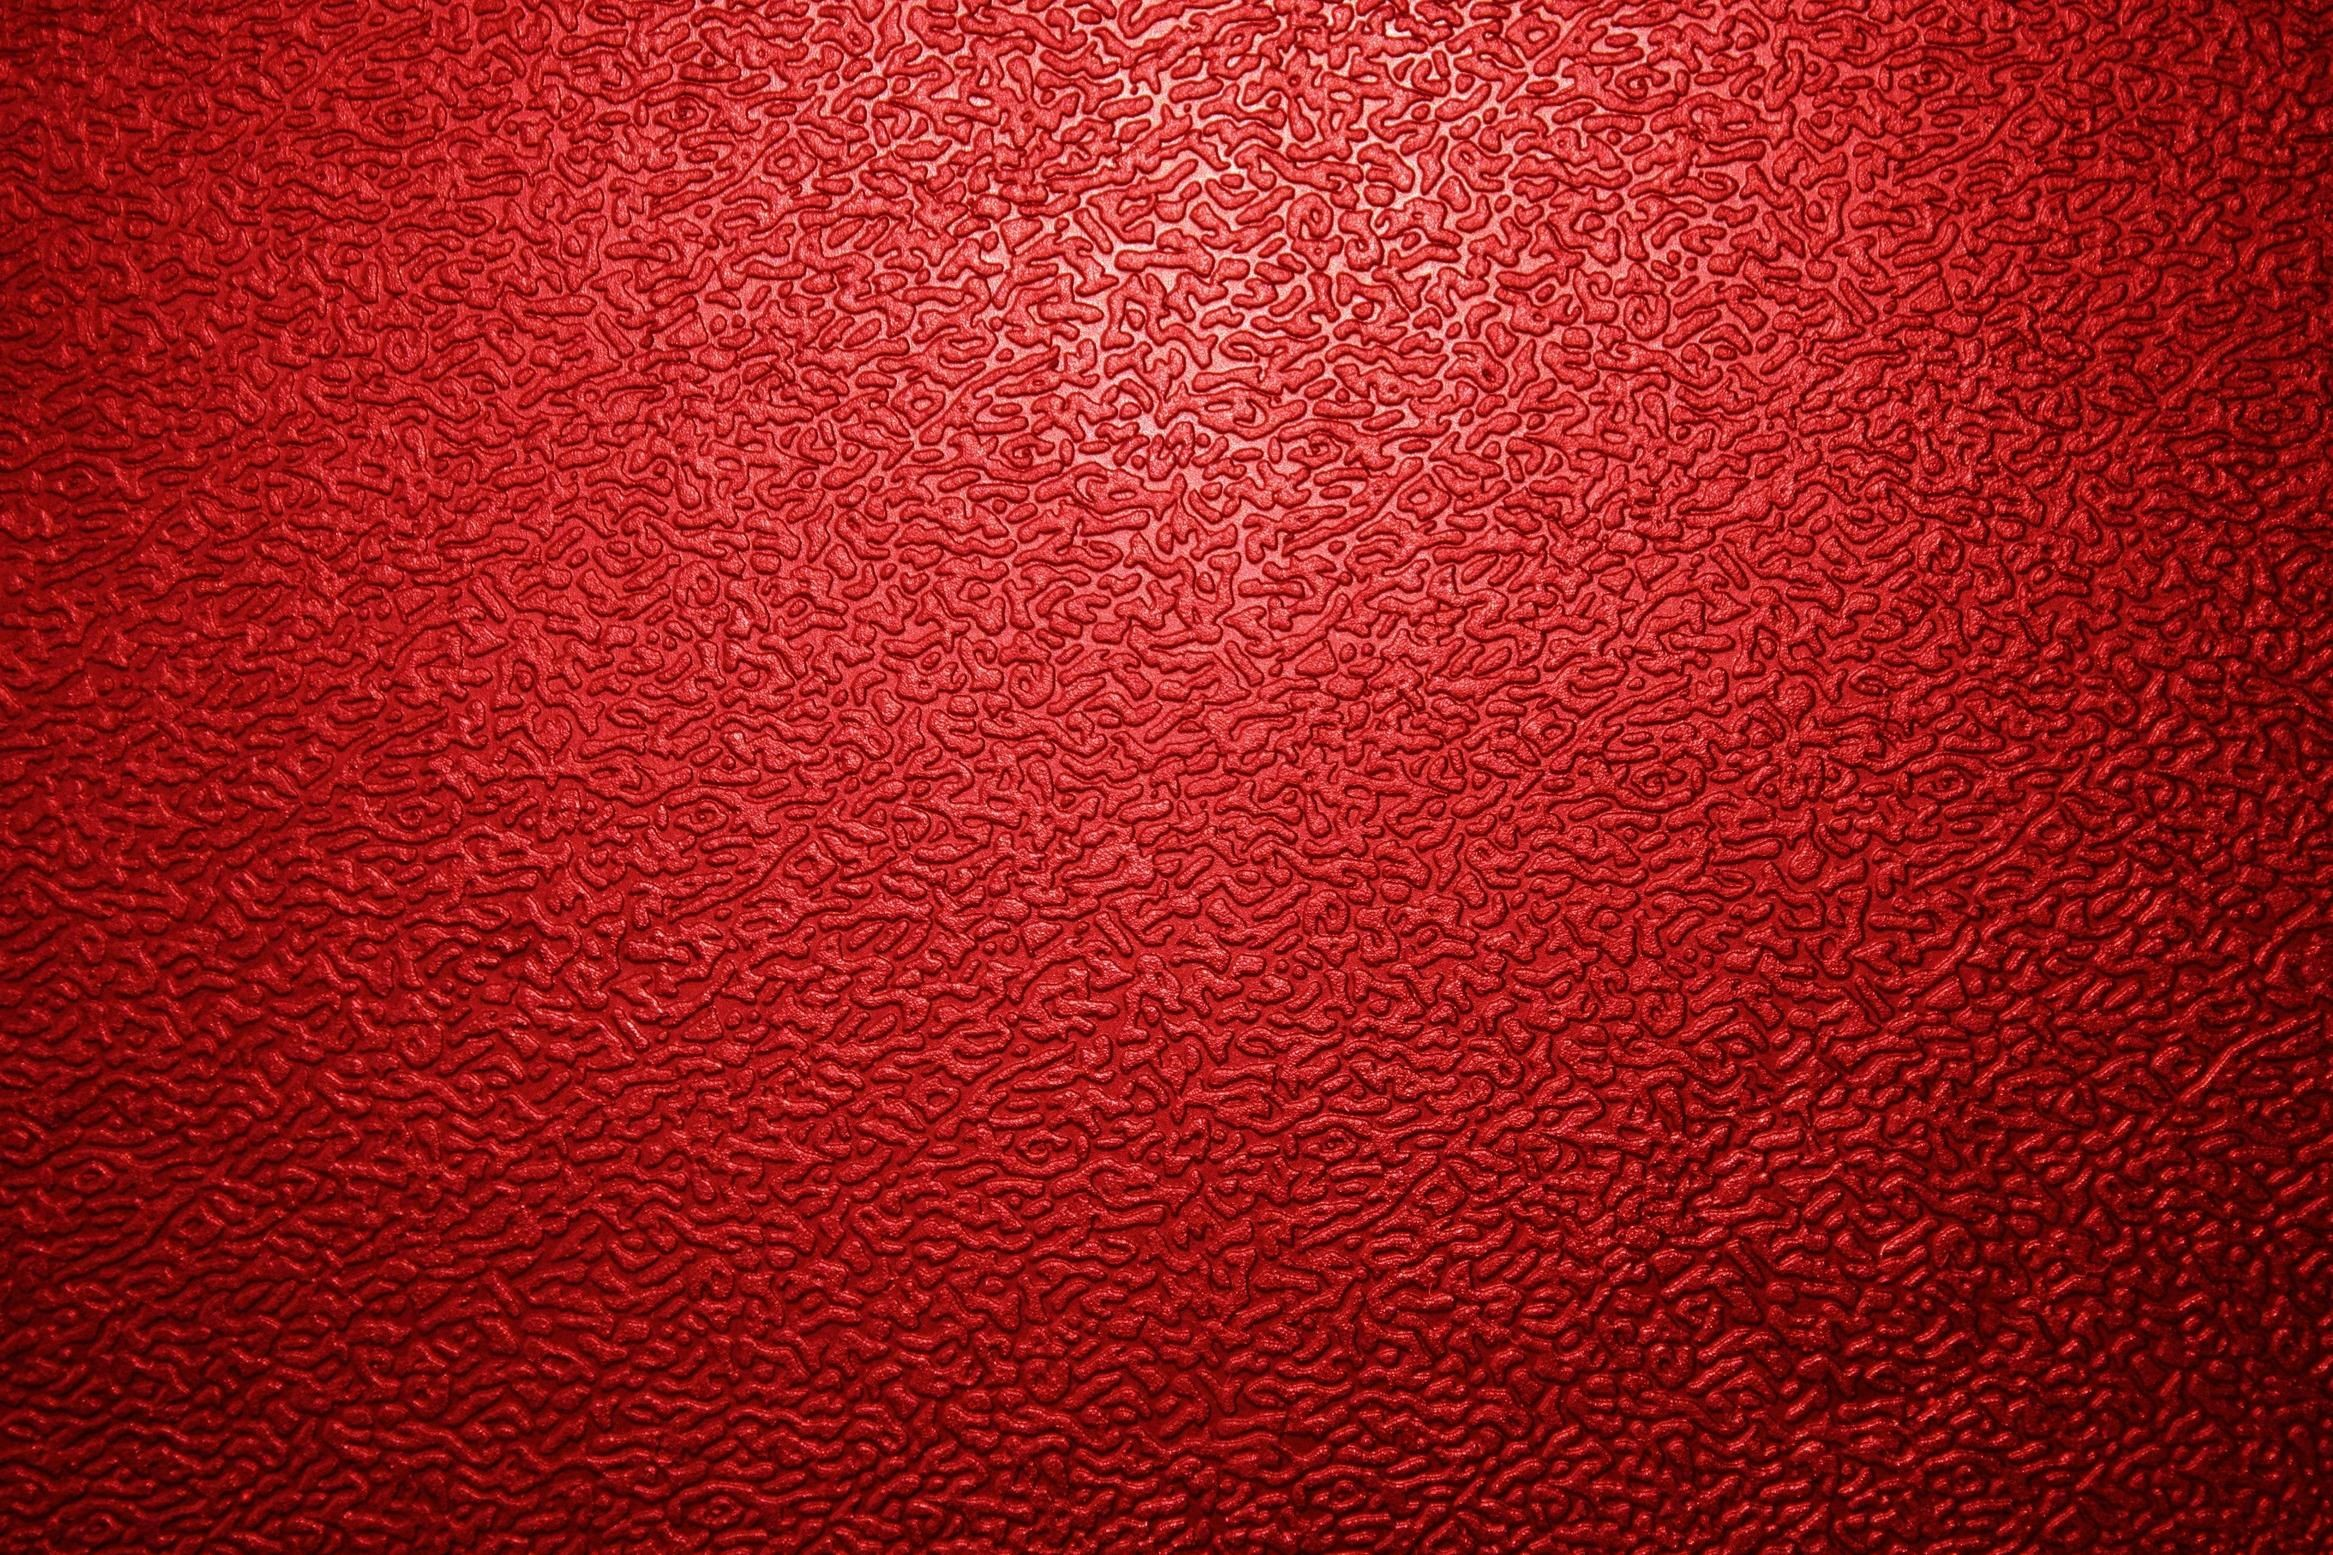 Res: 2333x1555, Red Textured Wallpaper